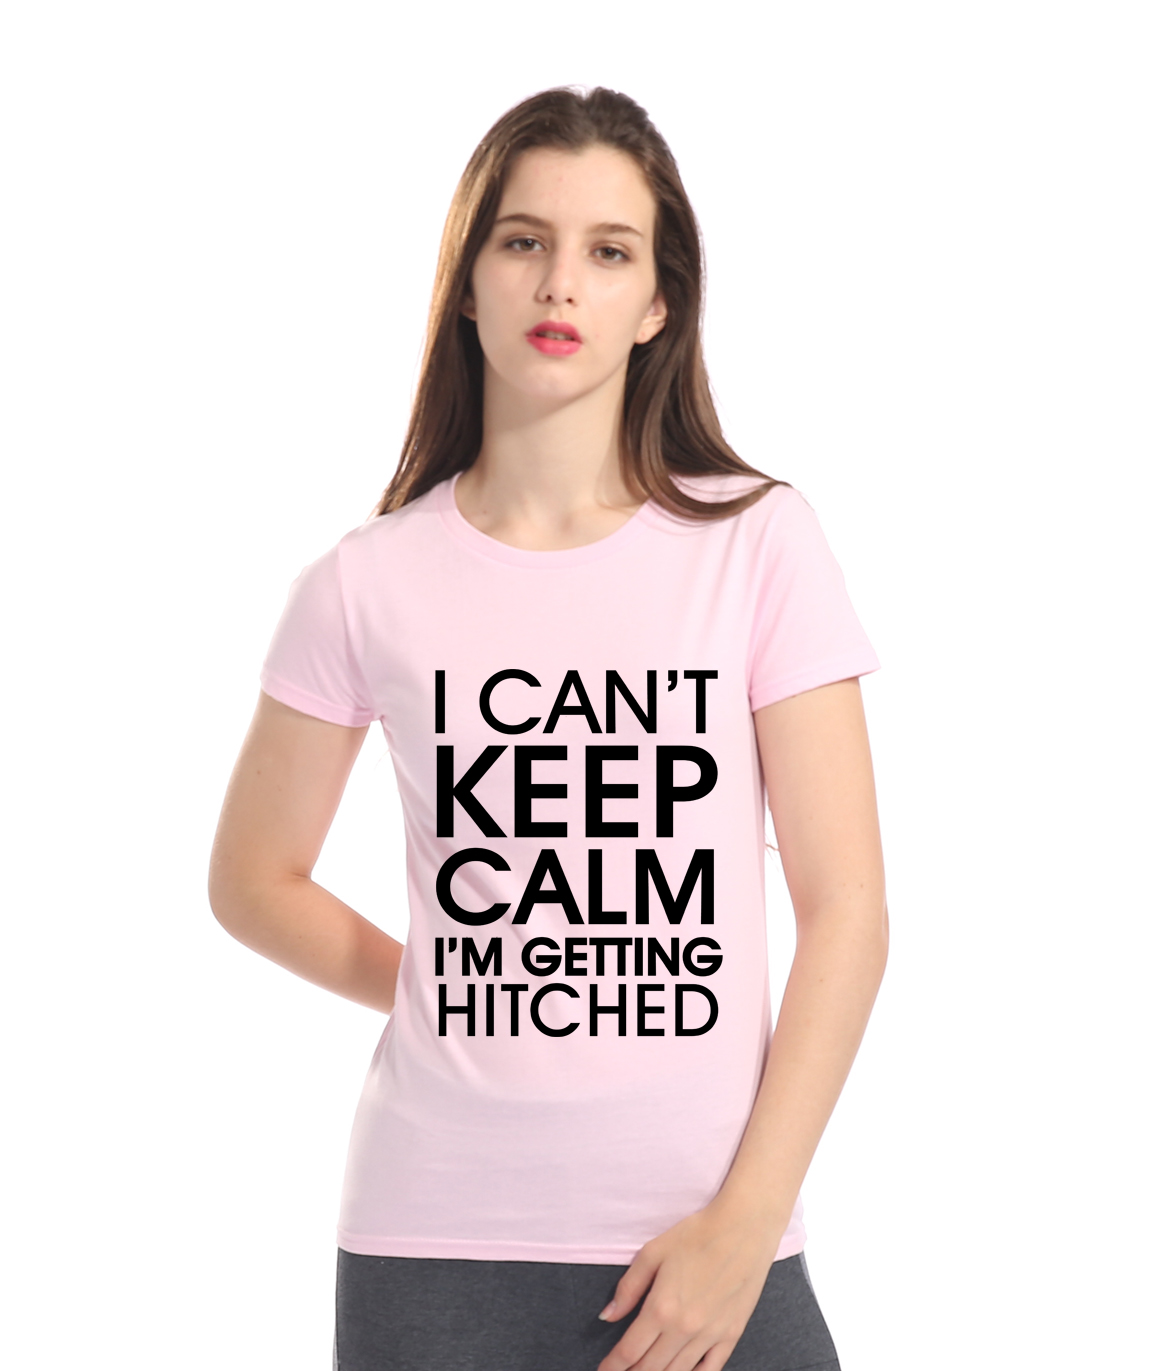 I CANT KEEP CALM IM GETTING HITCHED 2018 Summer Short Sleeve T-shirts Casual Cotton Shirt Top Tees Female T-shirt Kpop Lady